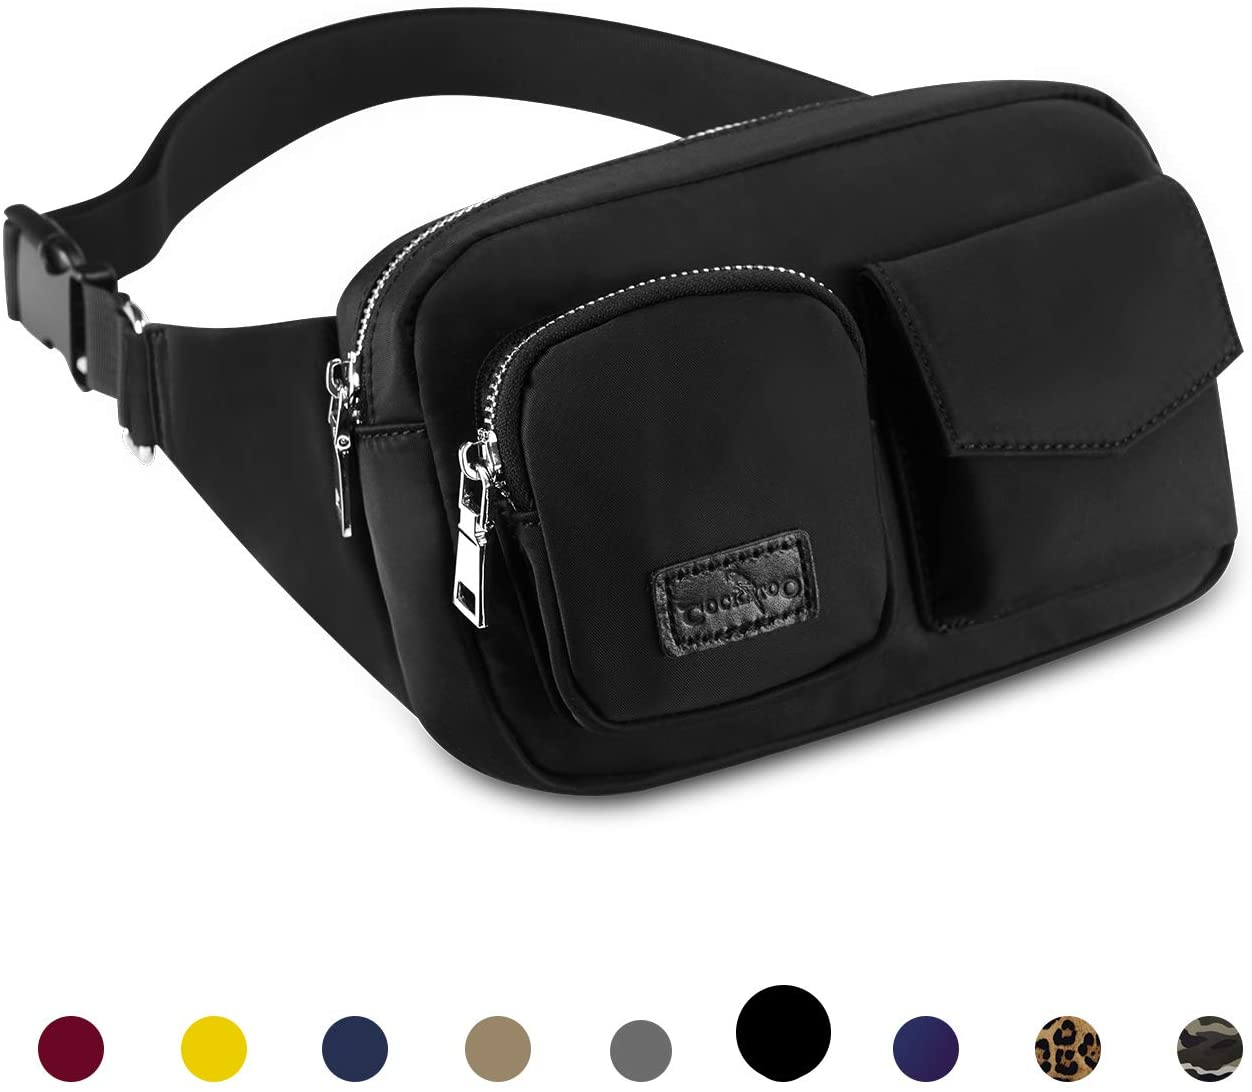 Cockatoo Fanny Pack Plus Size Waist Fanny Packs Stylish Large Women Men Fanny Packs Crossbody Boy Waist Bag Pack